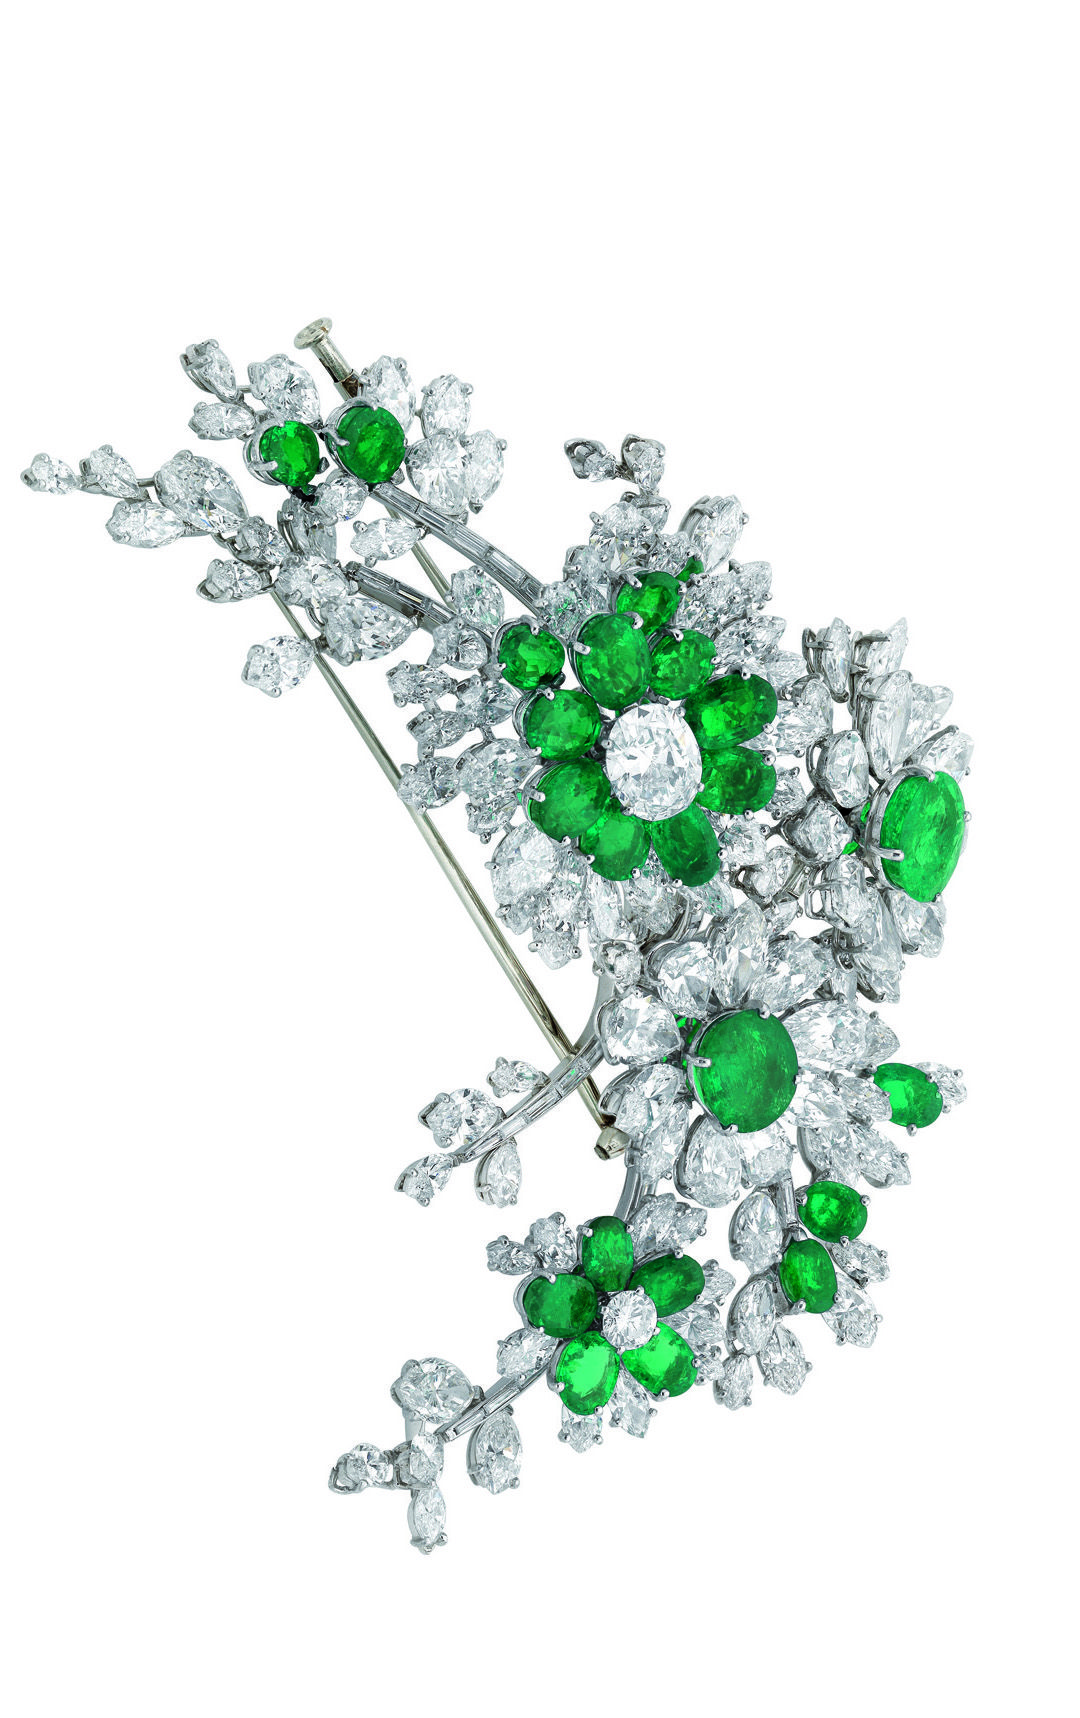 Bulgari jewelry (an emerald and diamond En Trembalnt brooch), a platinum sautoir with diamonds and sapphires - Elizabeth  Taylor